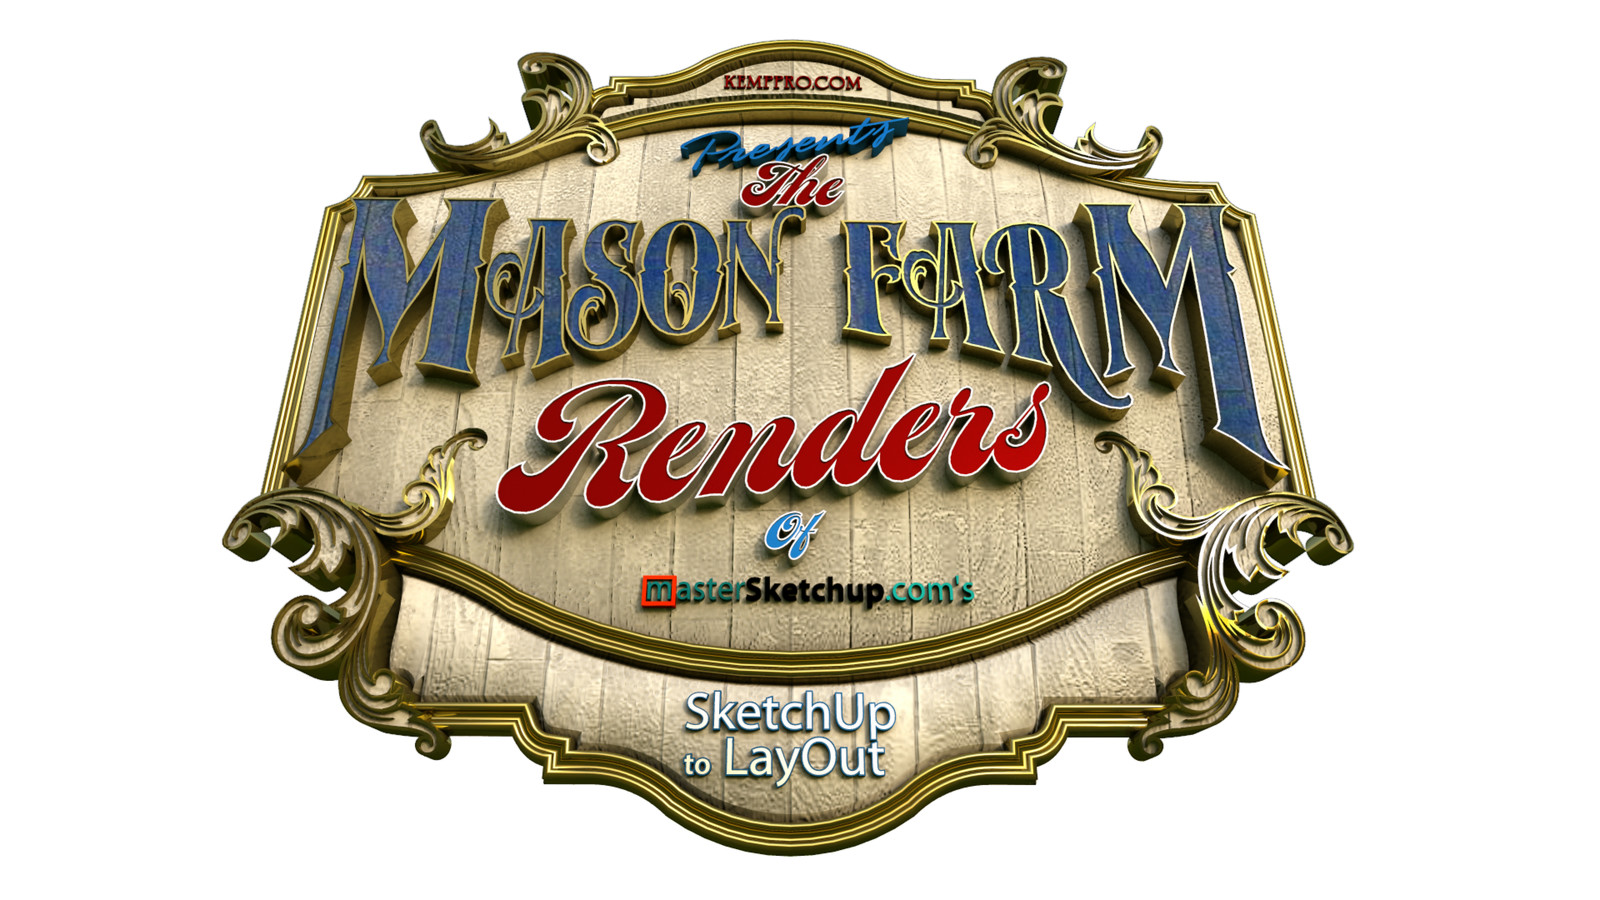 """36 Logo Test 01 Wide Angle - iP  """"SketchUp to LayOut"""" The Mason Farm Renders for the launching of the new book """"SketchUp to LayOut"""" http://bit.ly/2j0d0Wh by MasterSketchup."""